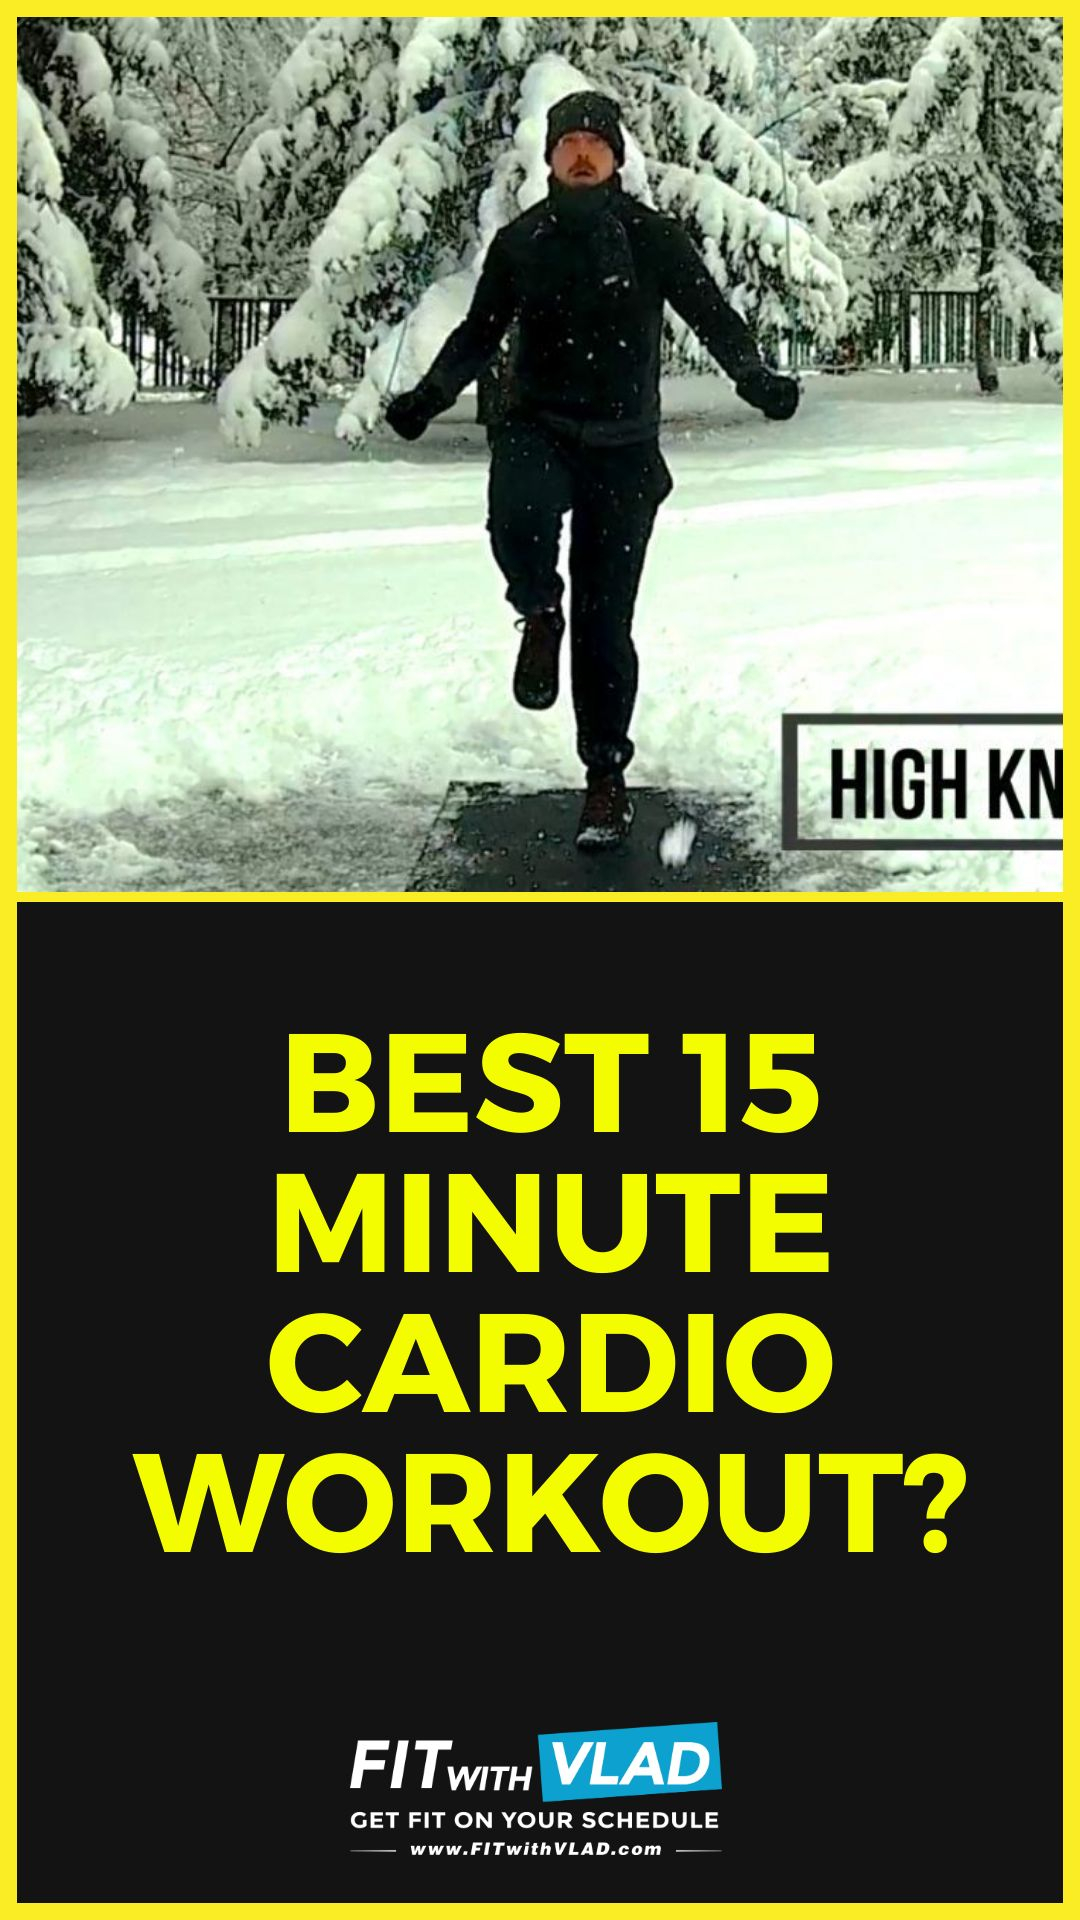 15 Minute Cardio Workout 5